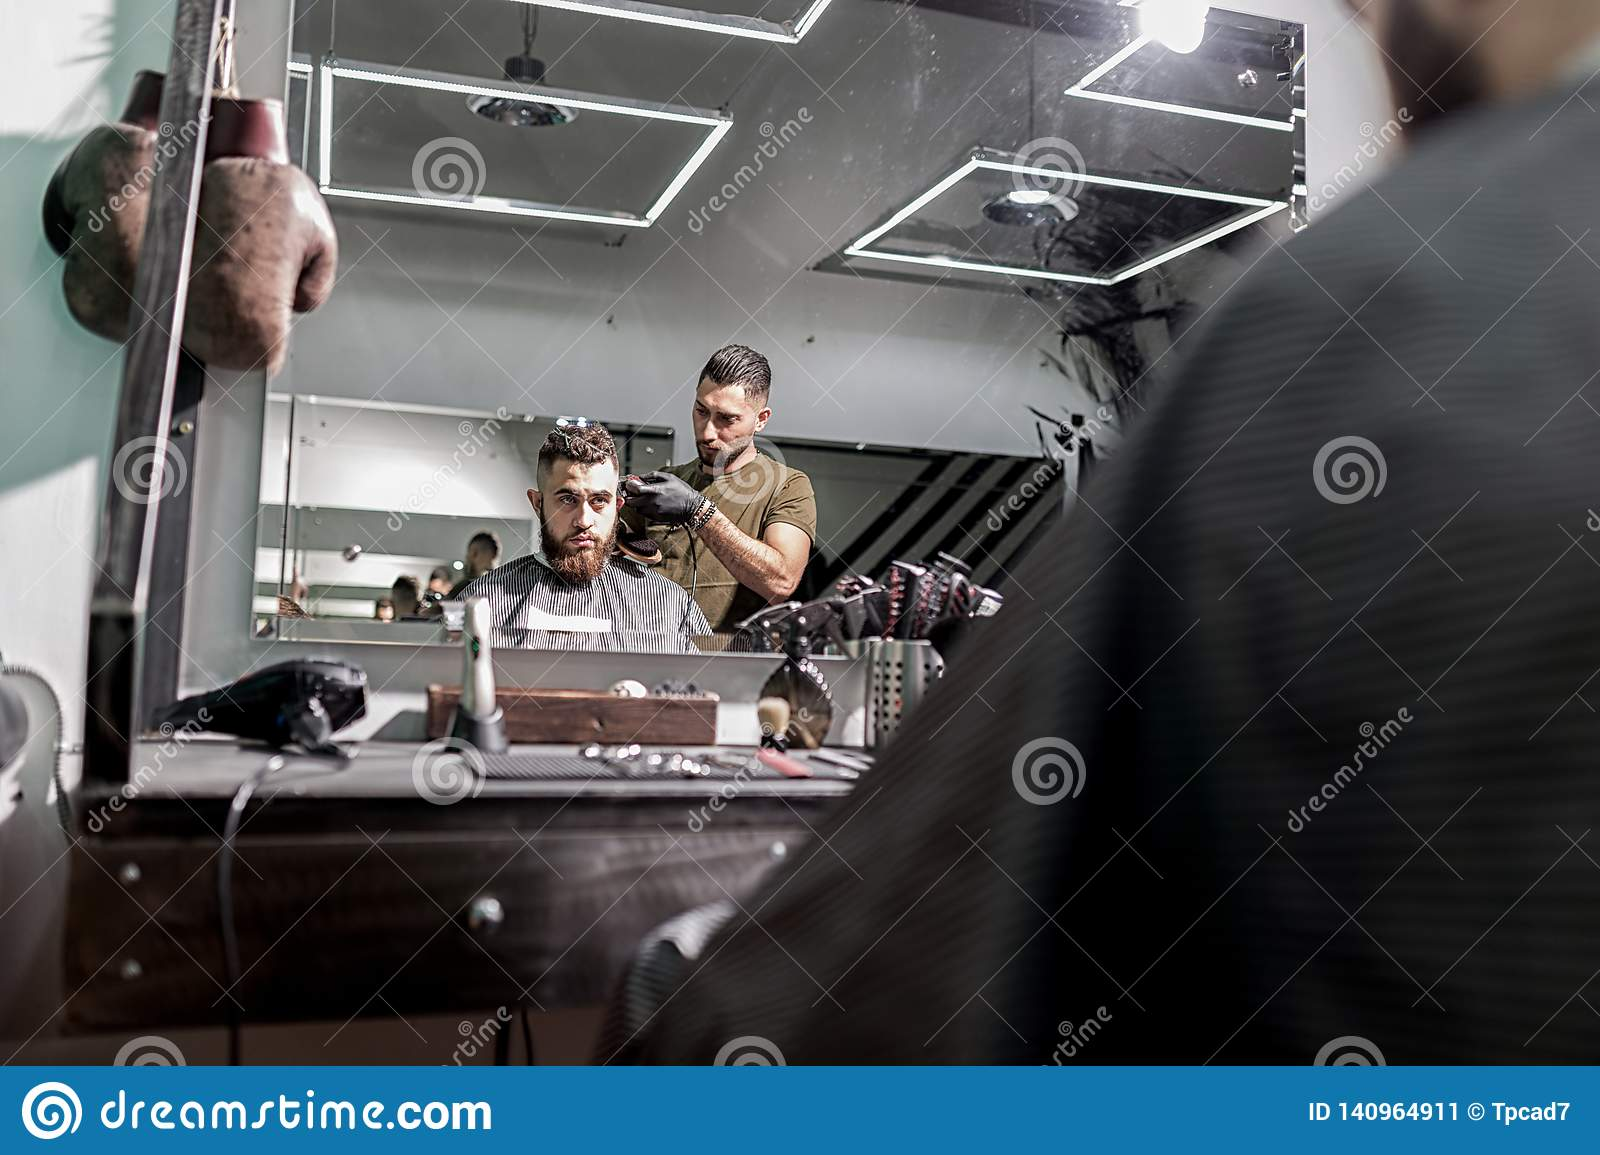 Reflection in the mirror of brutal man sits in a chair and barber shaves his hairs.